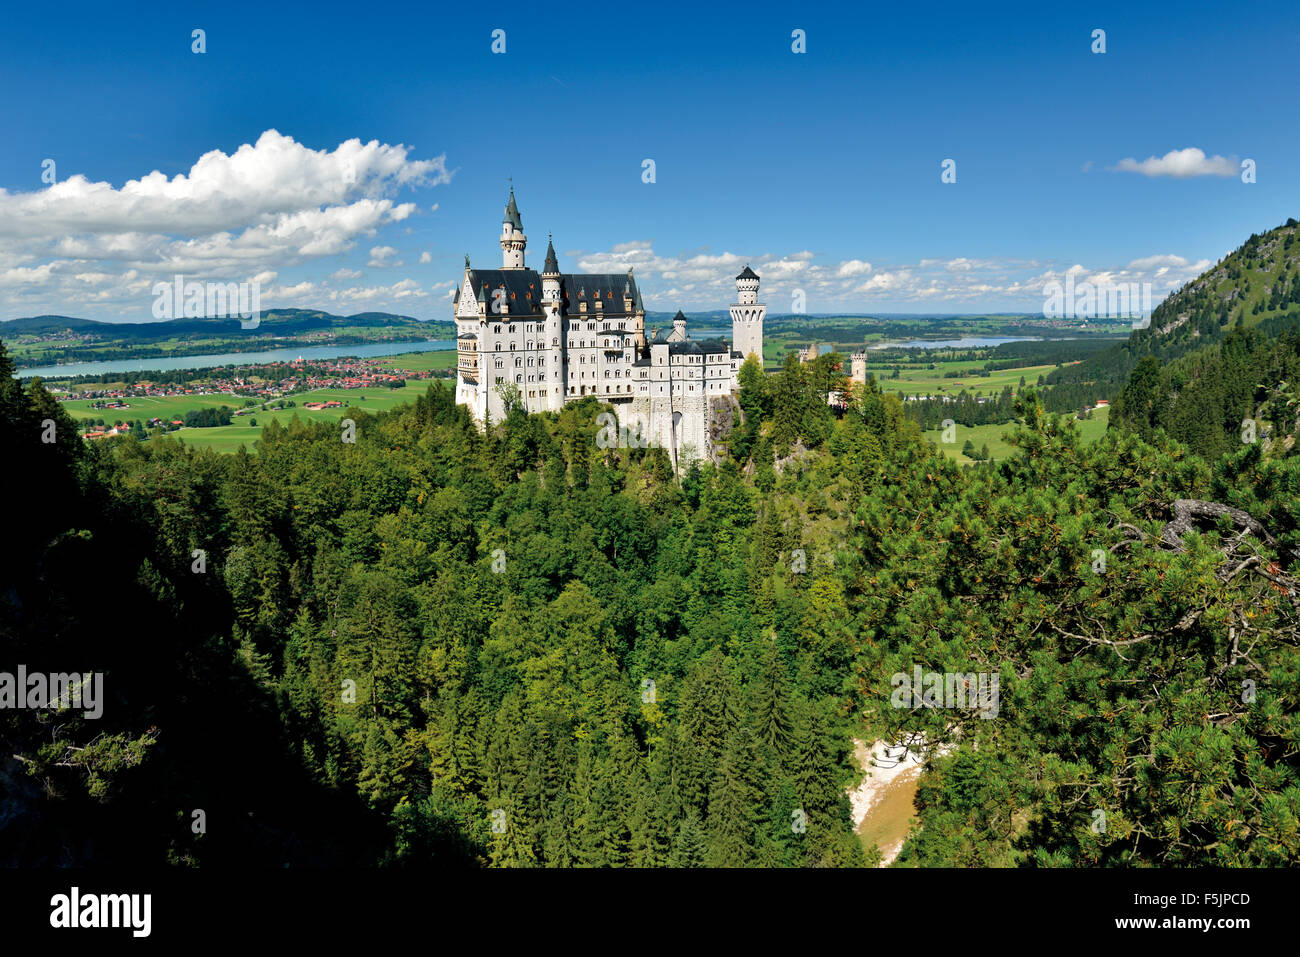 """Germany: View to famous castle and palace  """"Neuschwanstein"""" in Bavaria Stock Photo"""